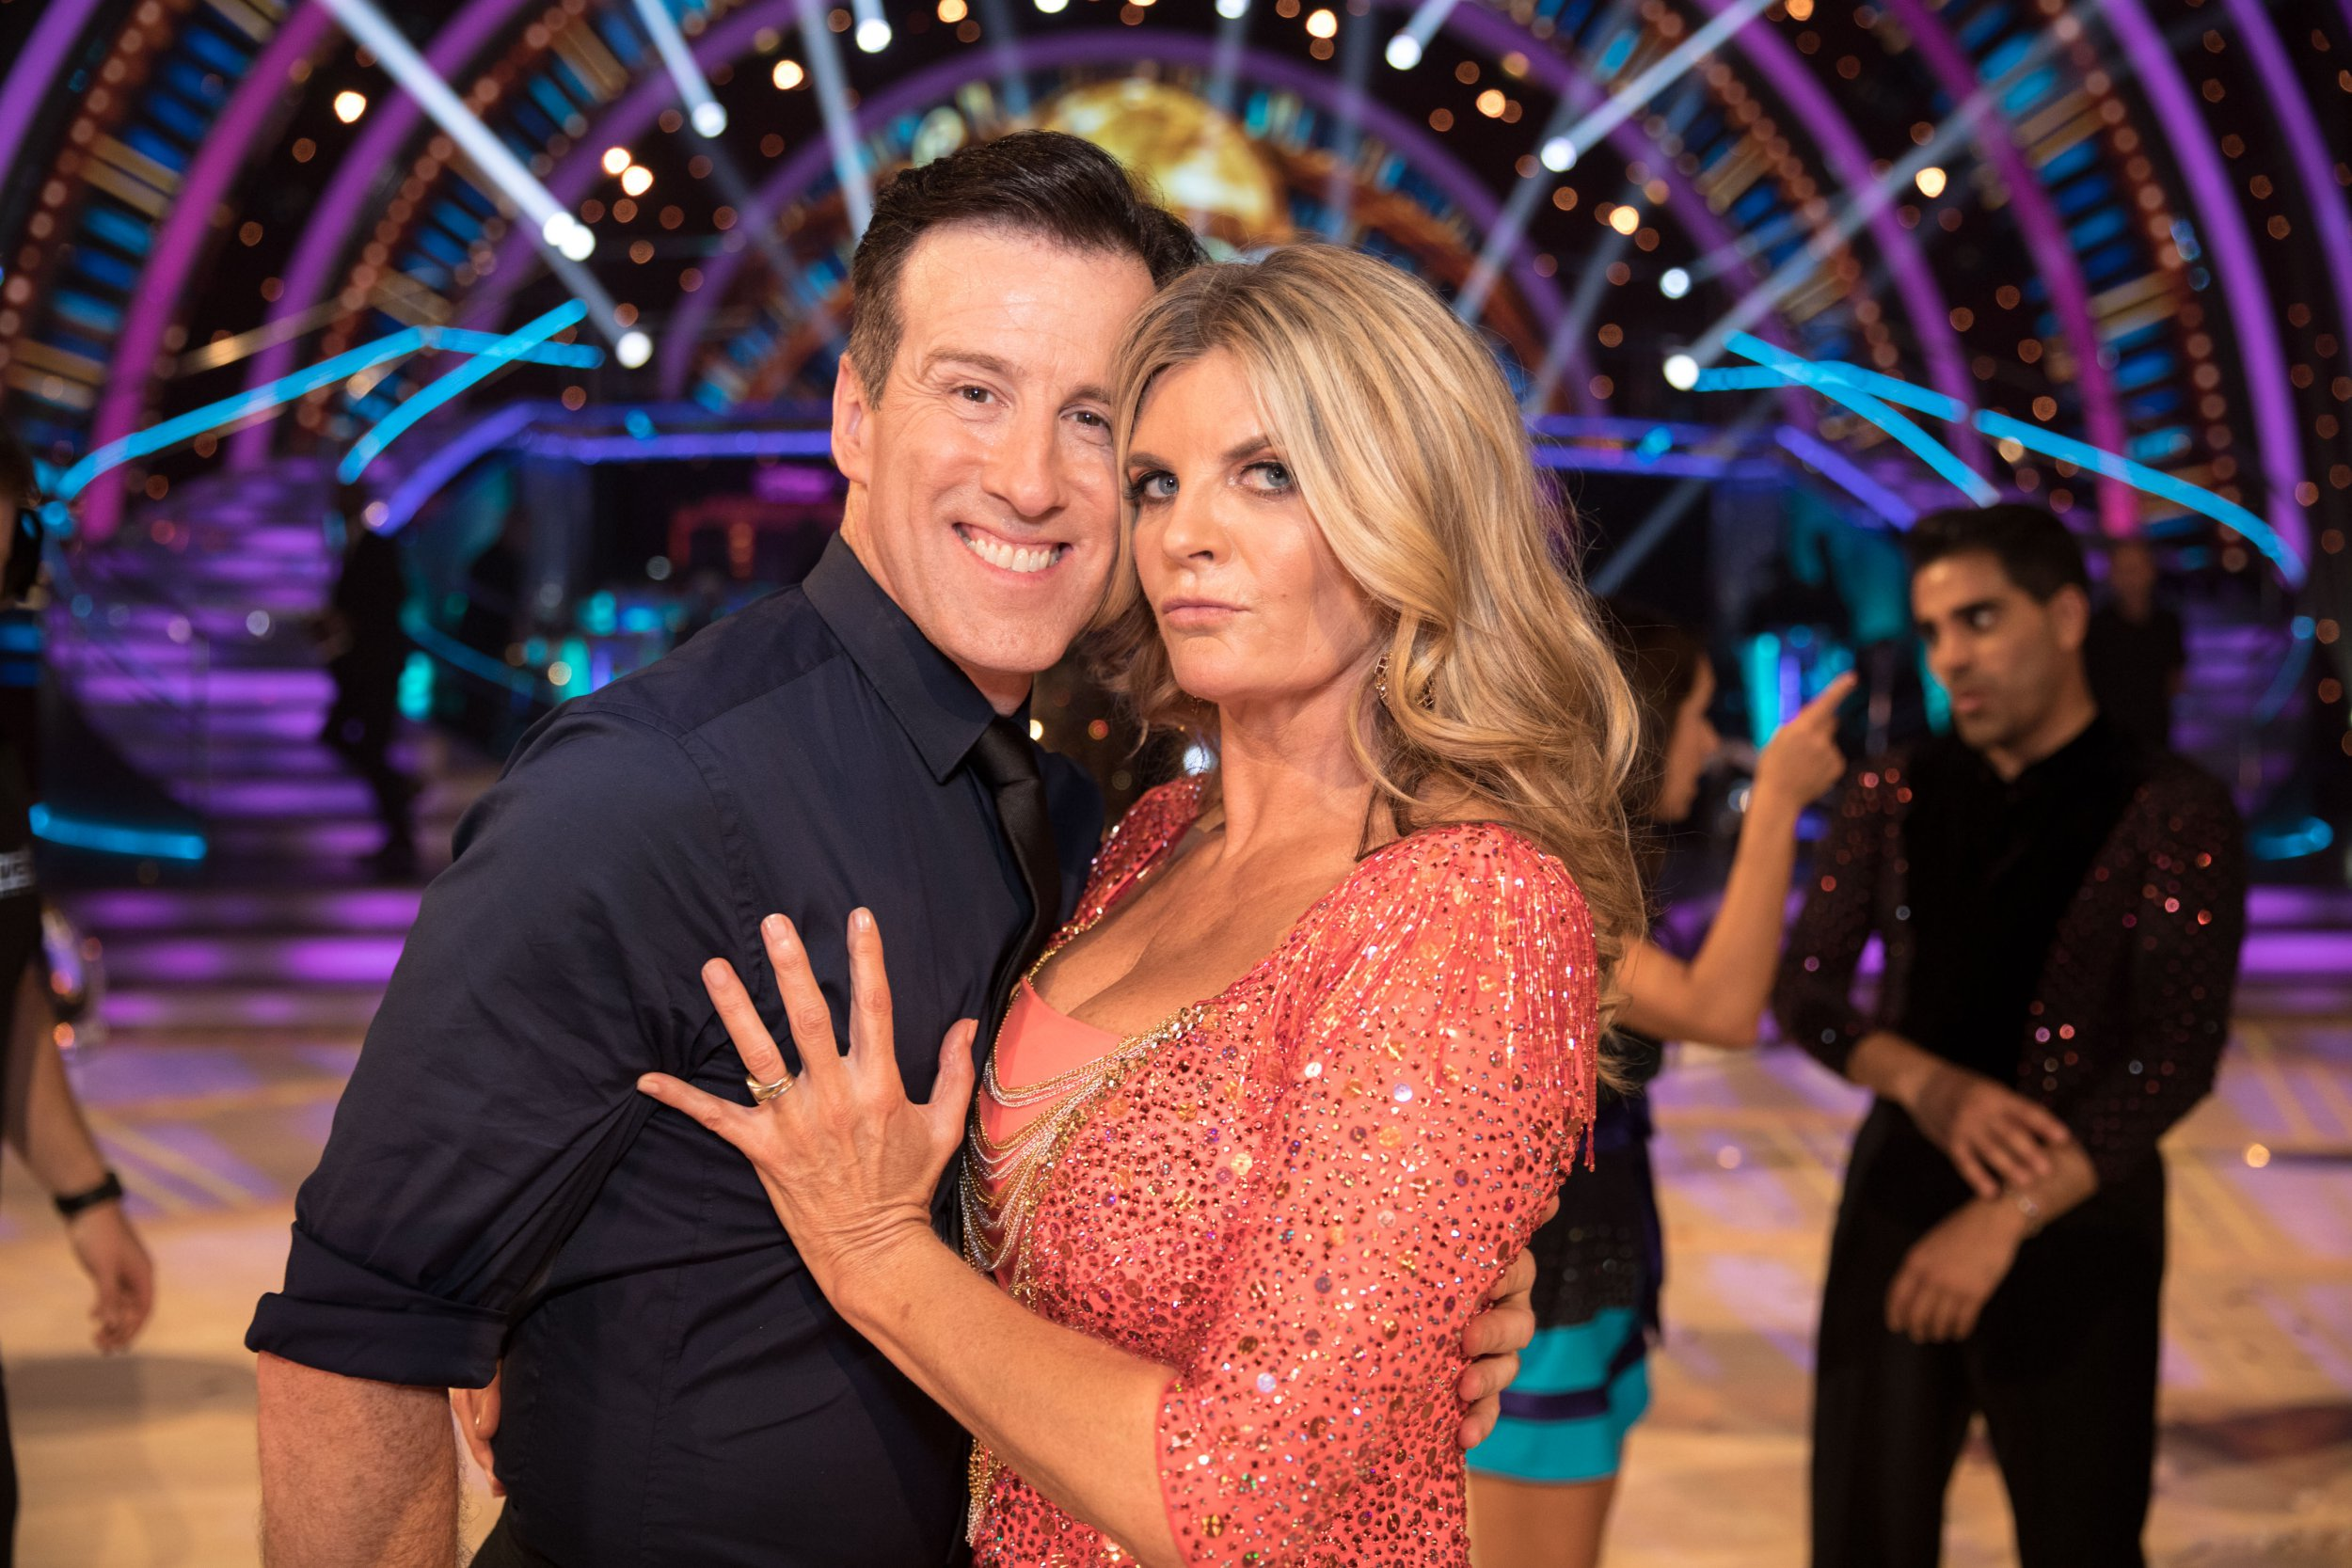 Strictly bosses fear Anton Du Beke will quit after being paired with 'dud partners'